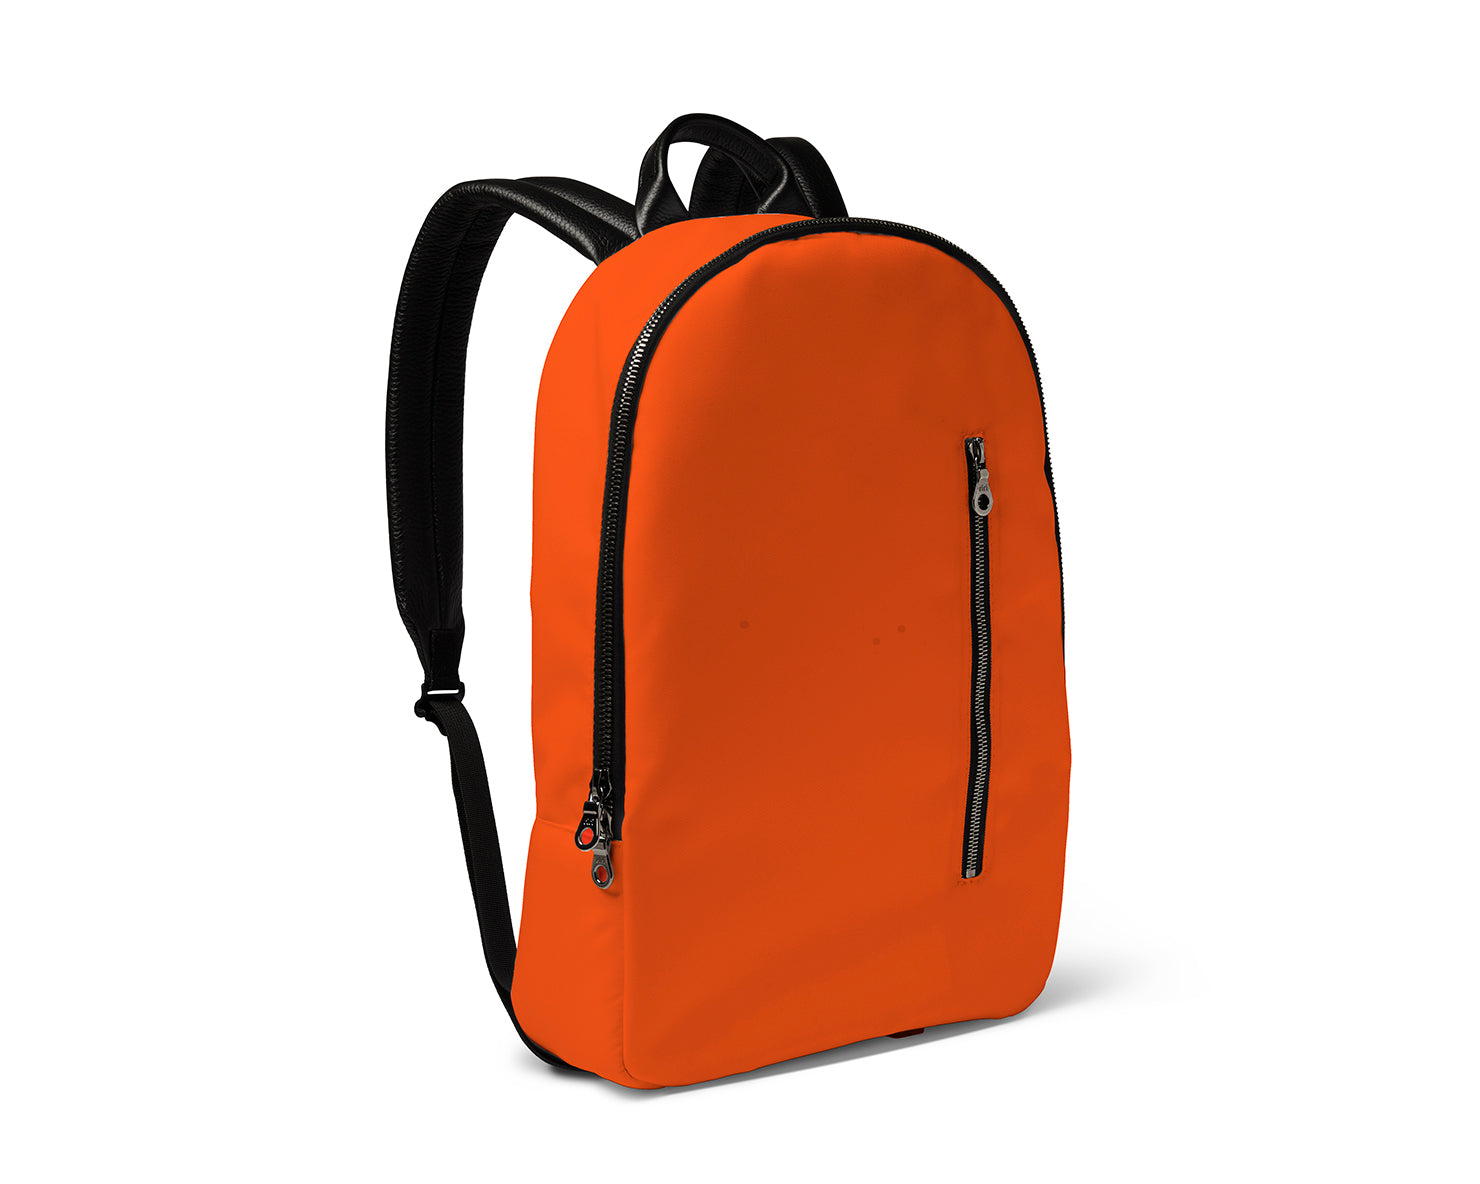 SPECIAL OPS BACKPACK 3.0 | KILLSPENCER® - Orange Nylon